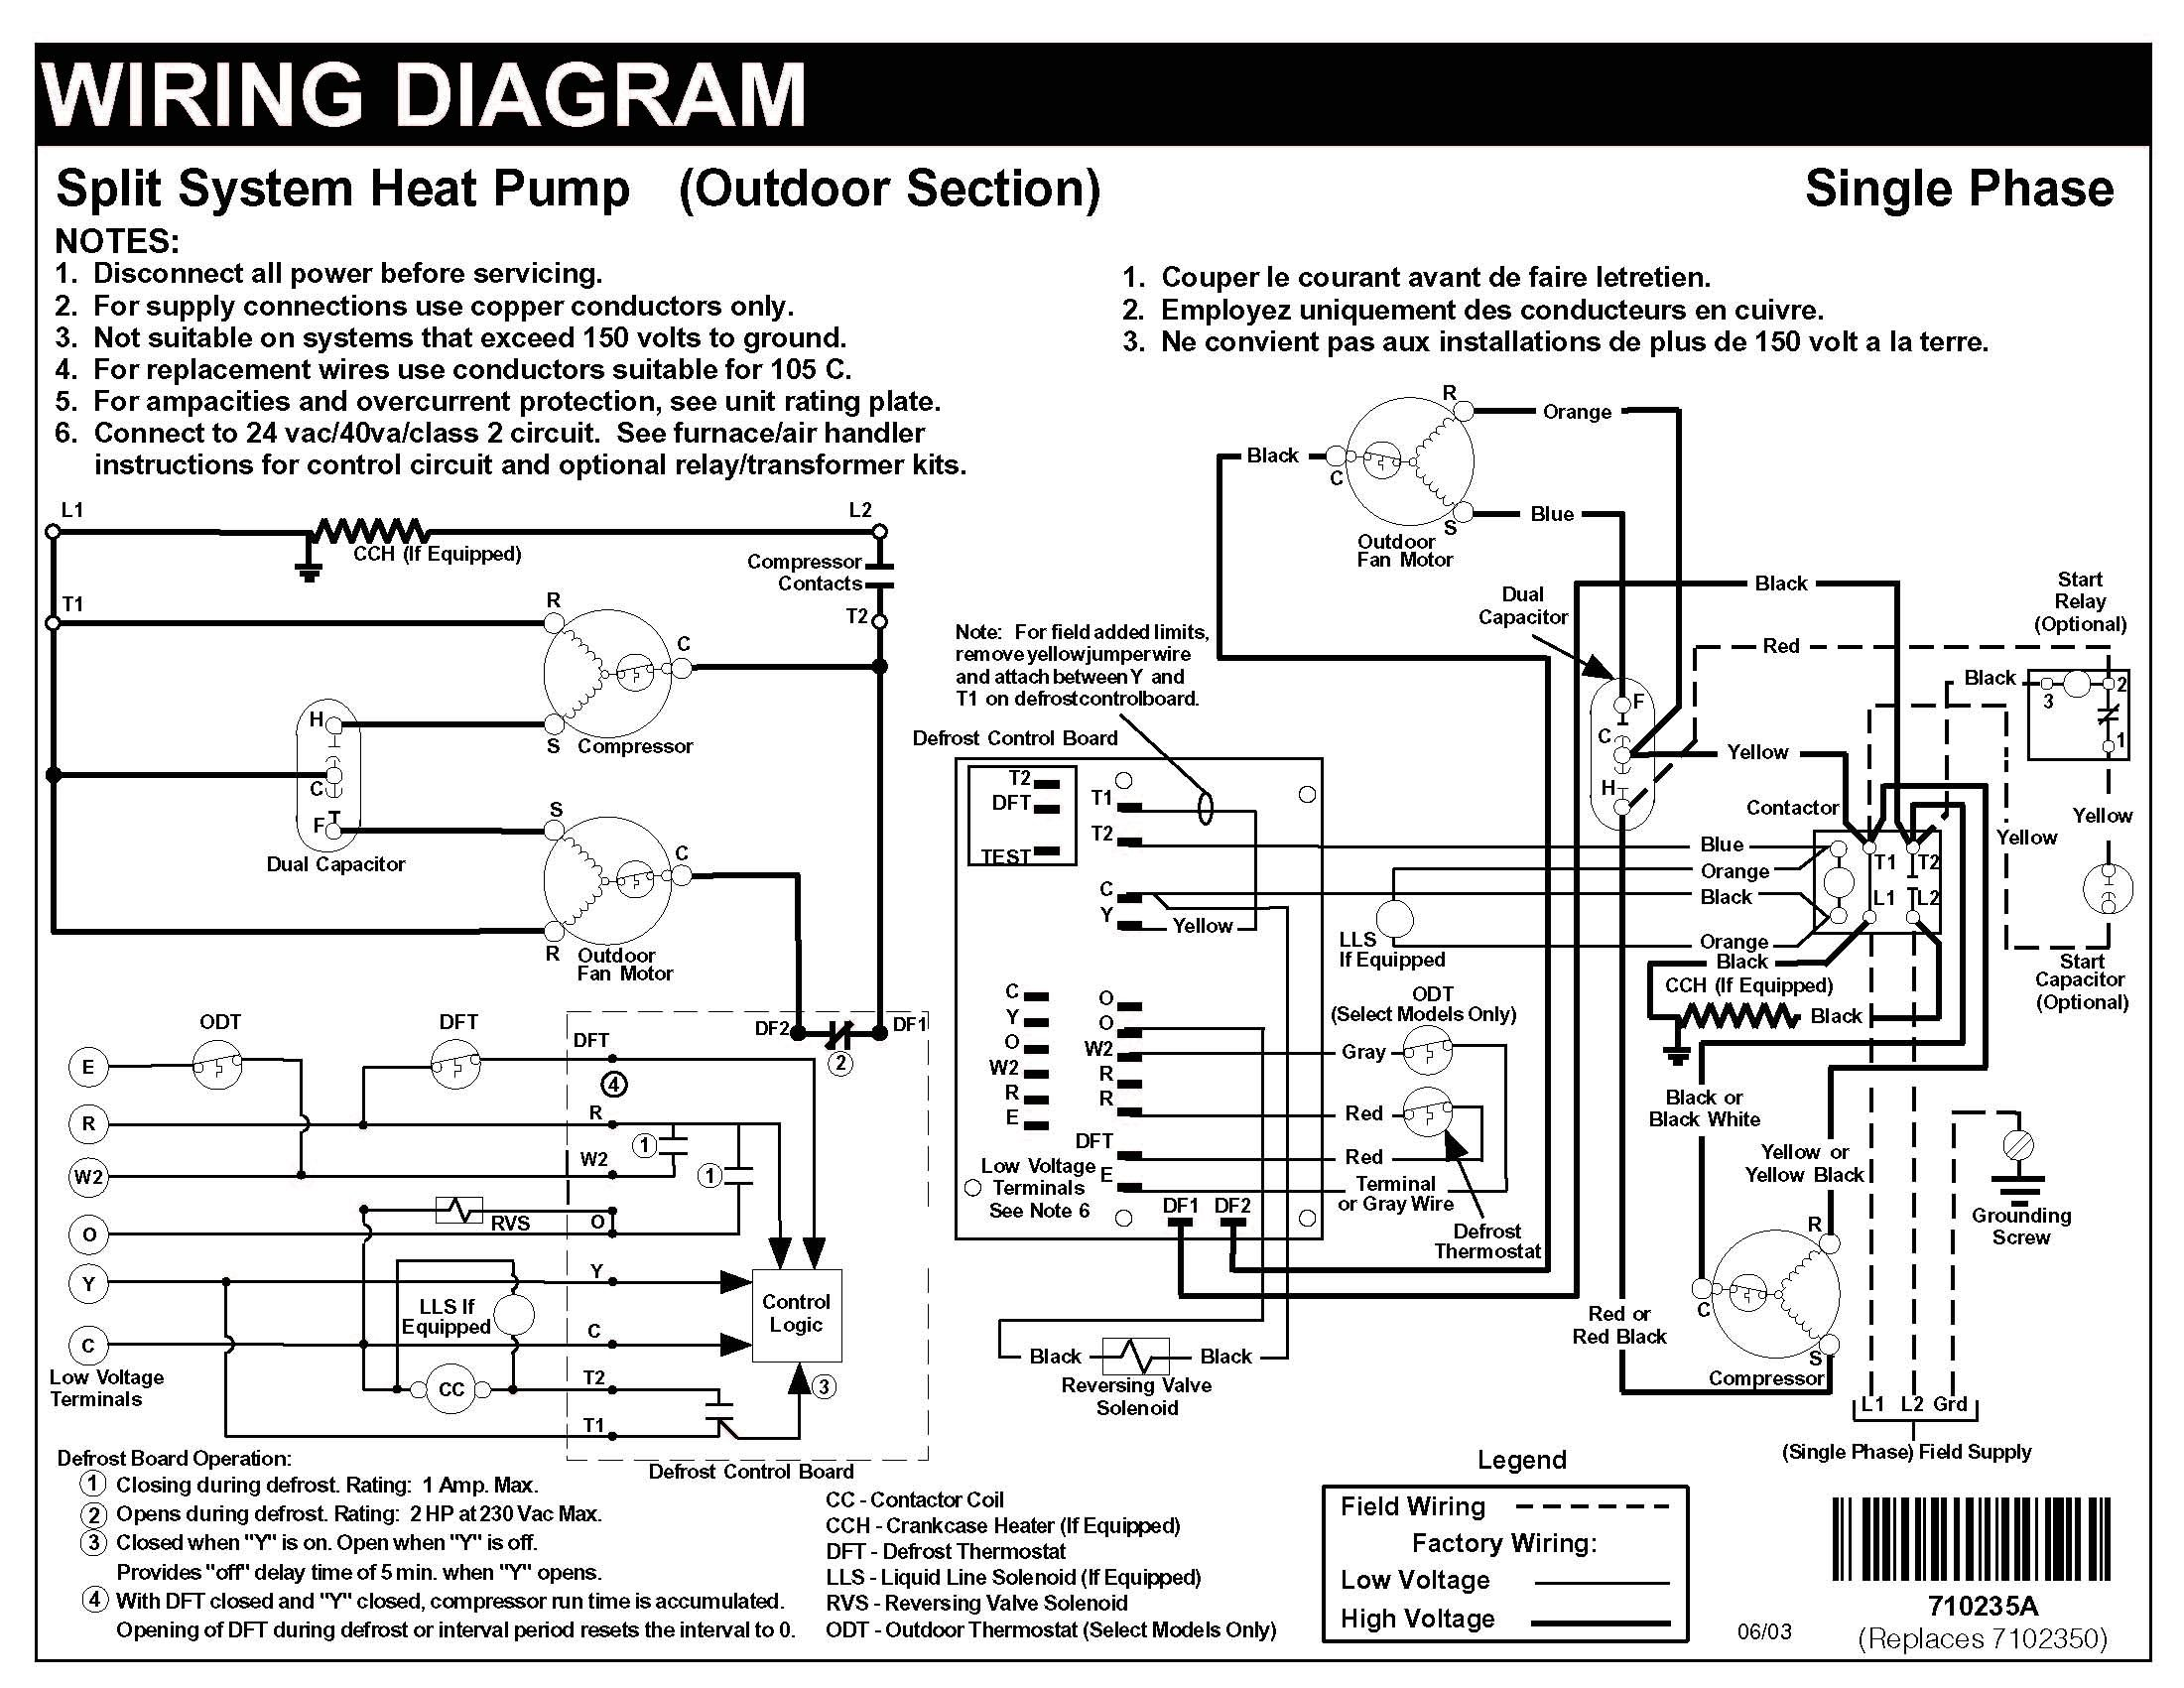 wiring diagram for carrier furnace the wiring diagram basic heat pump wiring diagram basic printable wiring wiring diagram